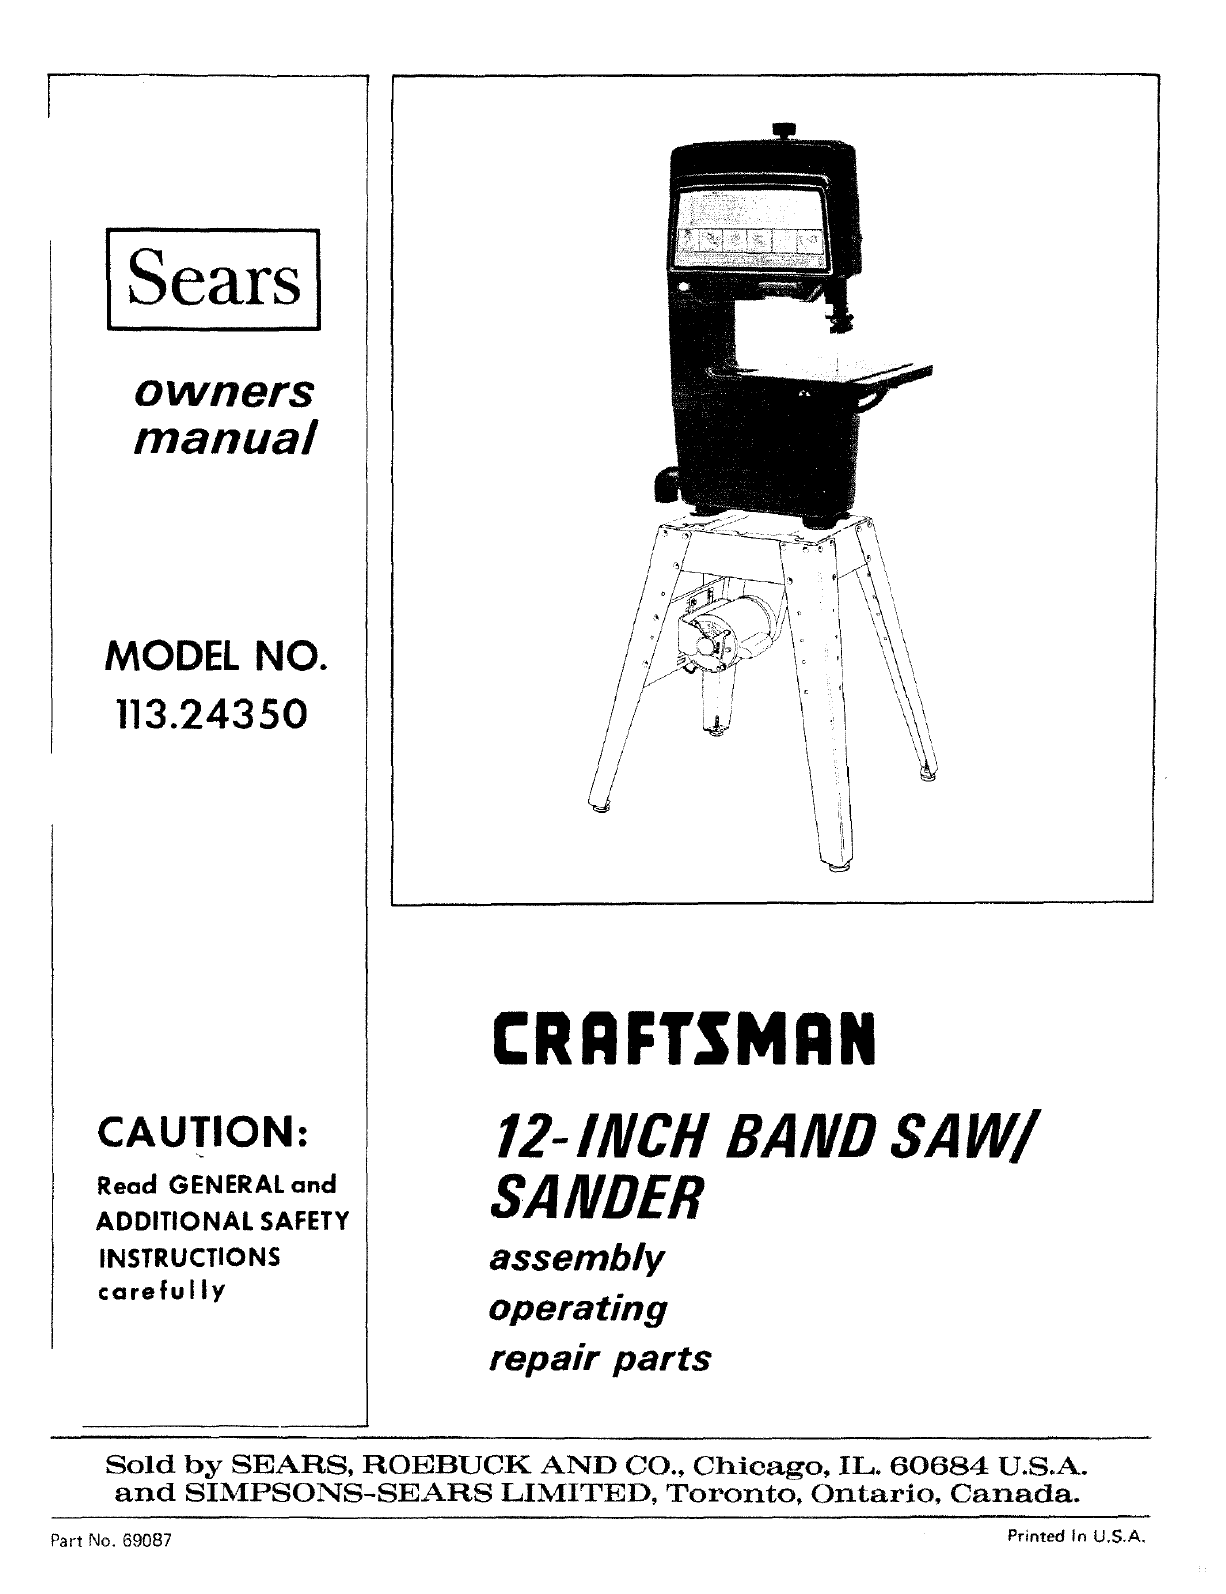 Craftsman Craftsman 12 Inch Band Saw Parts Manual Guide